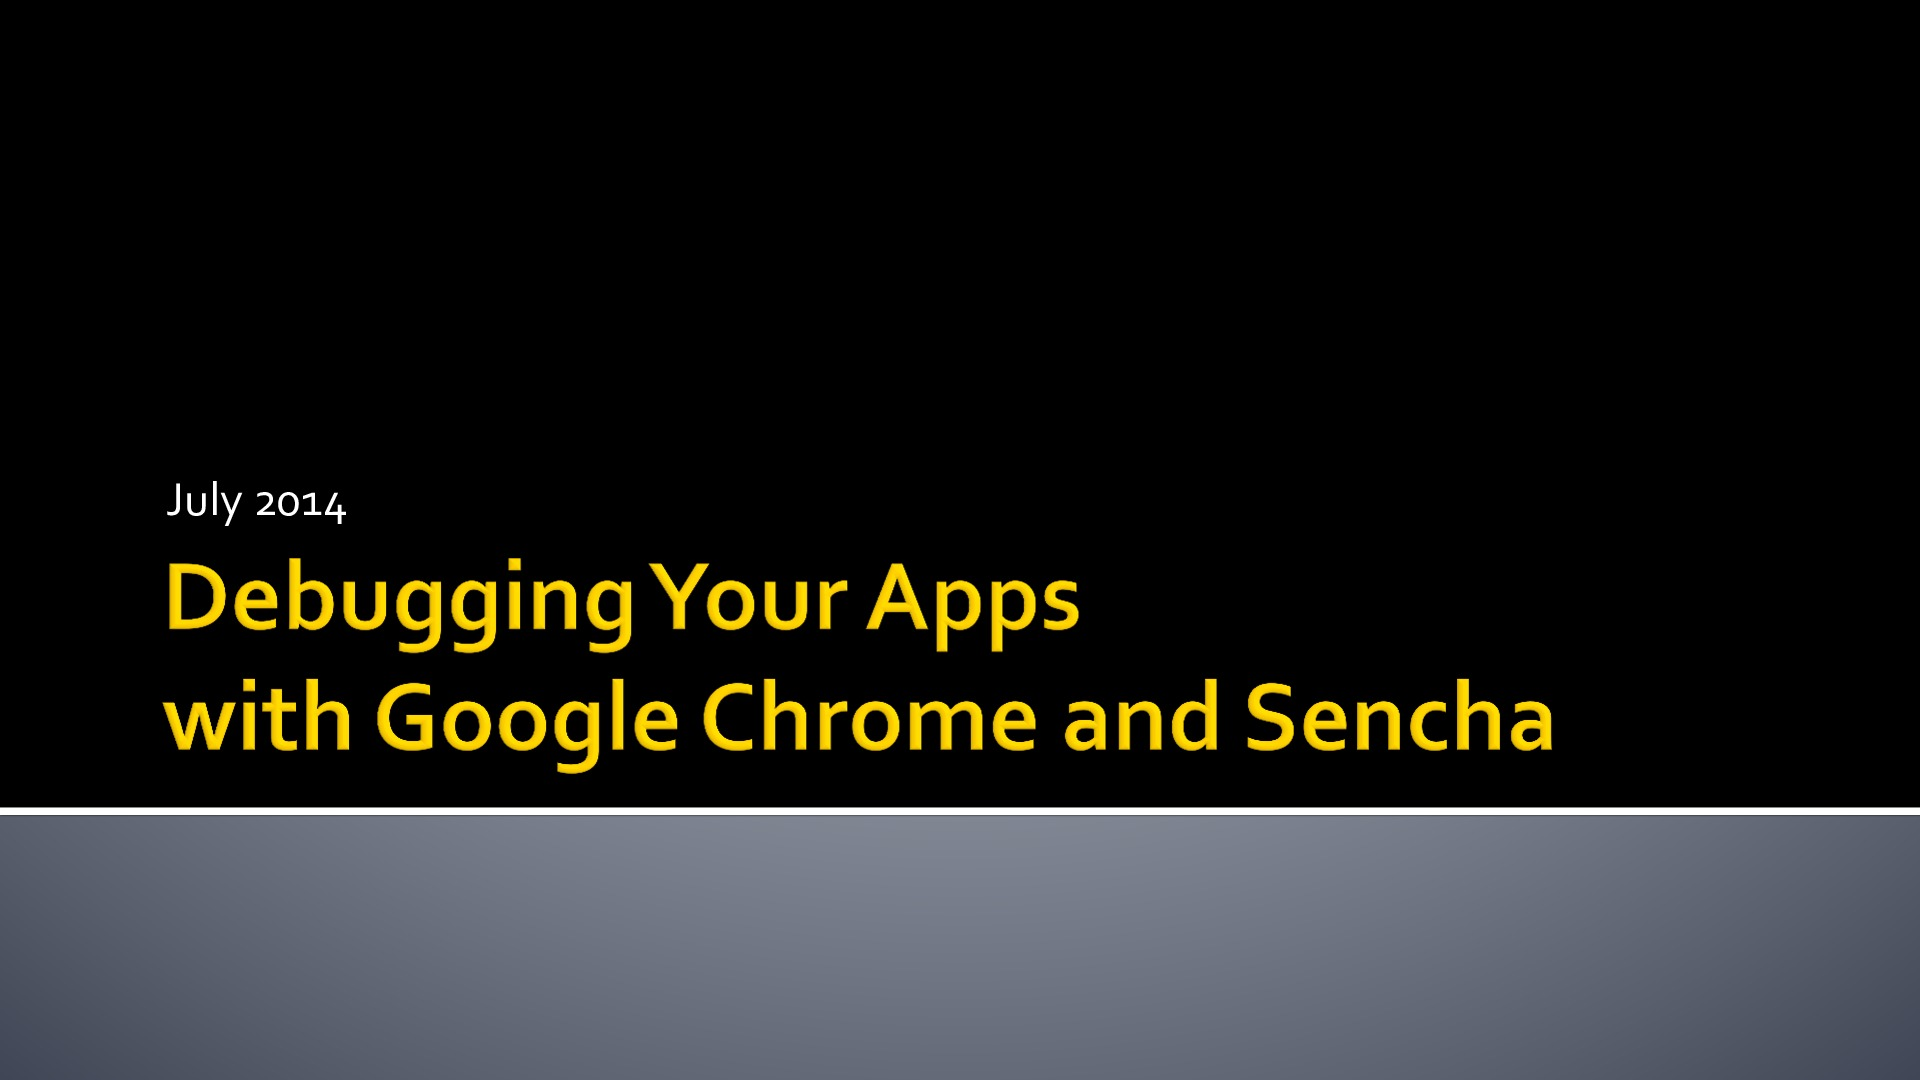 Debugging your Apps with Google Chrome and Sencha